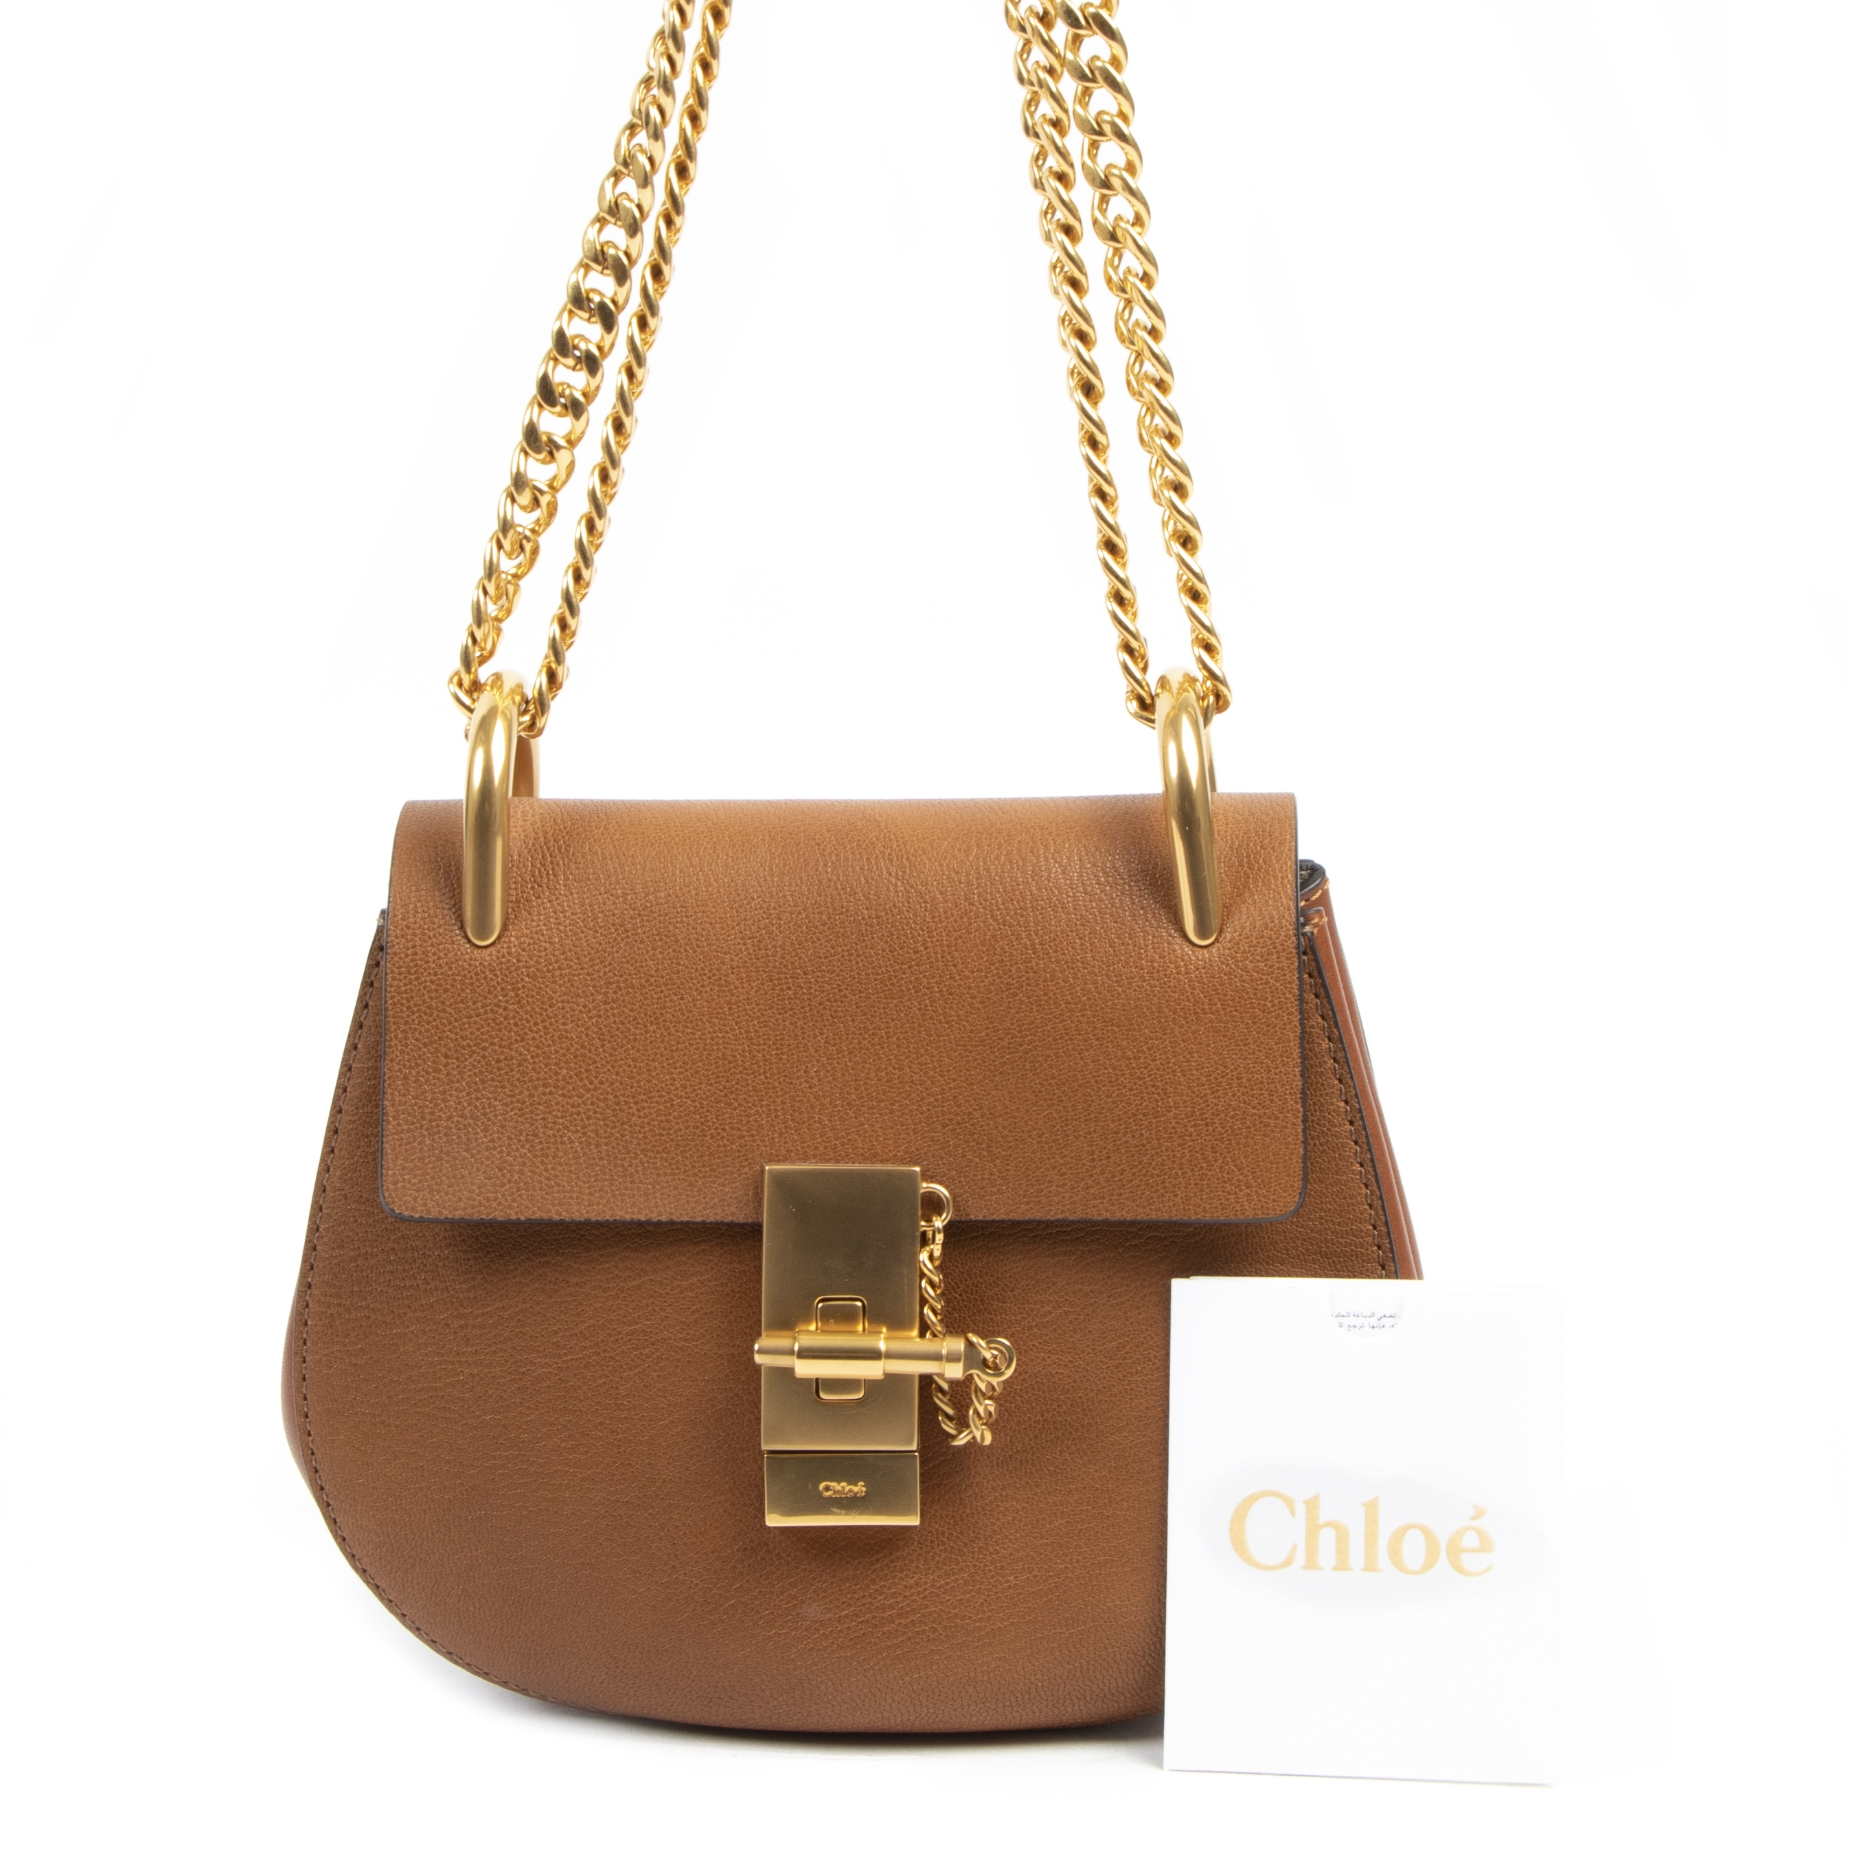 Chloé Brown Small Drew Bag GHW